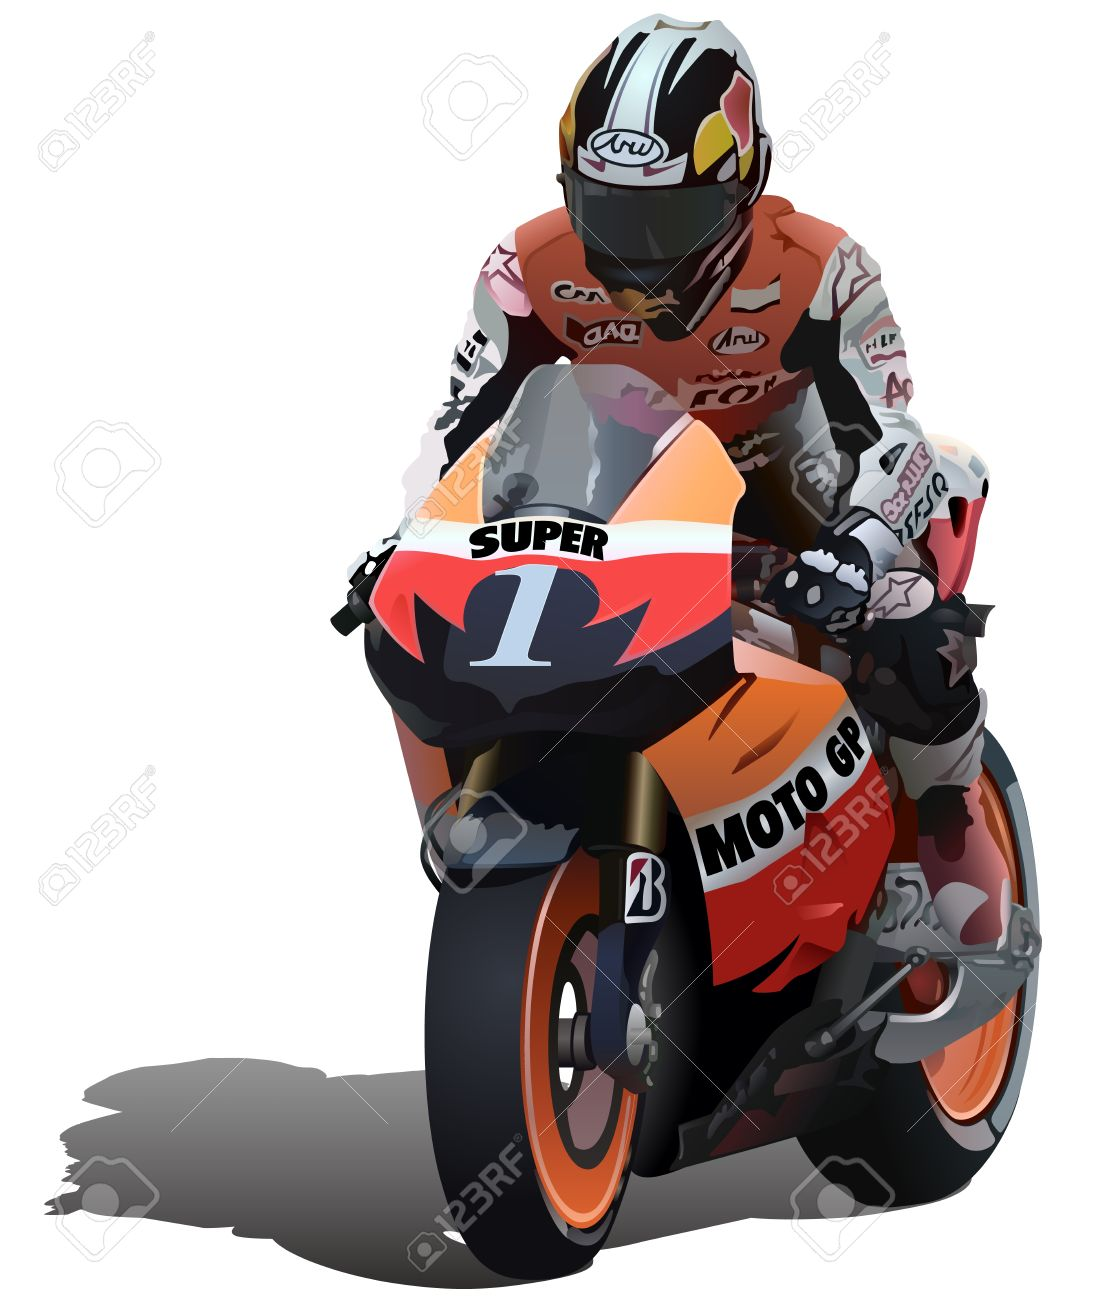 5,109 Motorcycle Racing Stock Vector Illustration And Royalty Free.